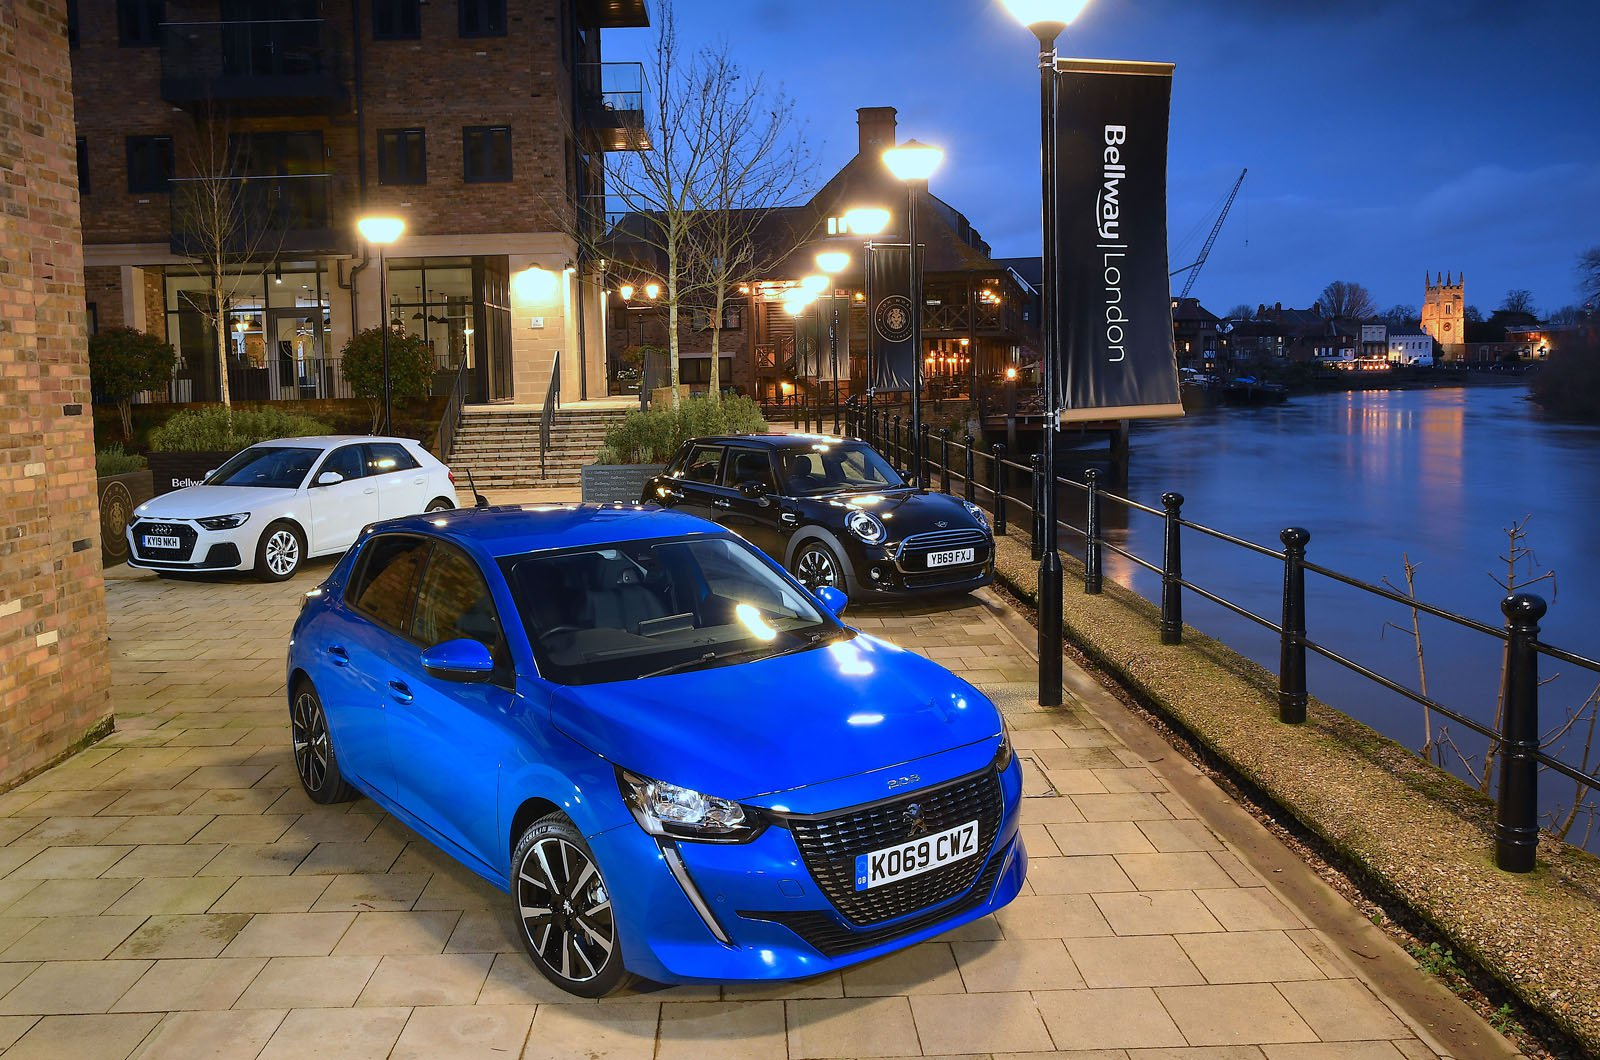 Peugeot 208 with Audi A1 and Mini hatchback